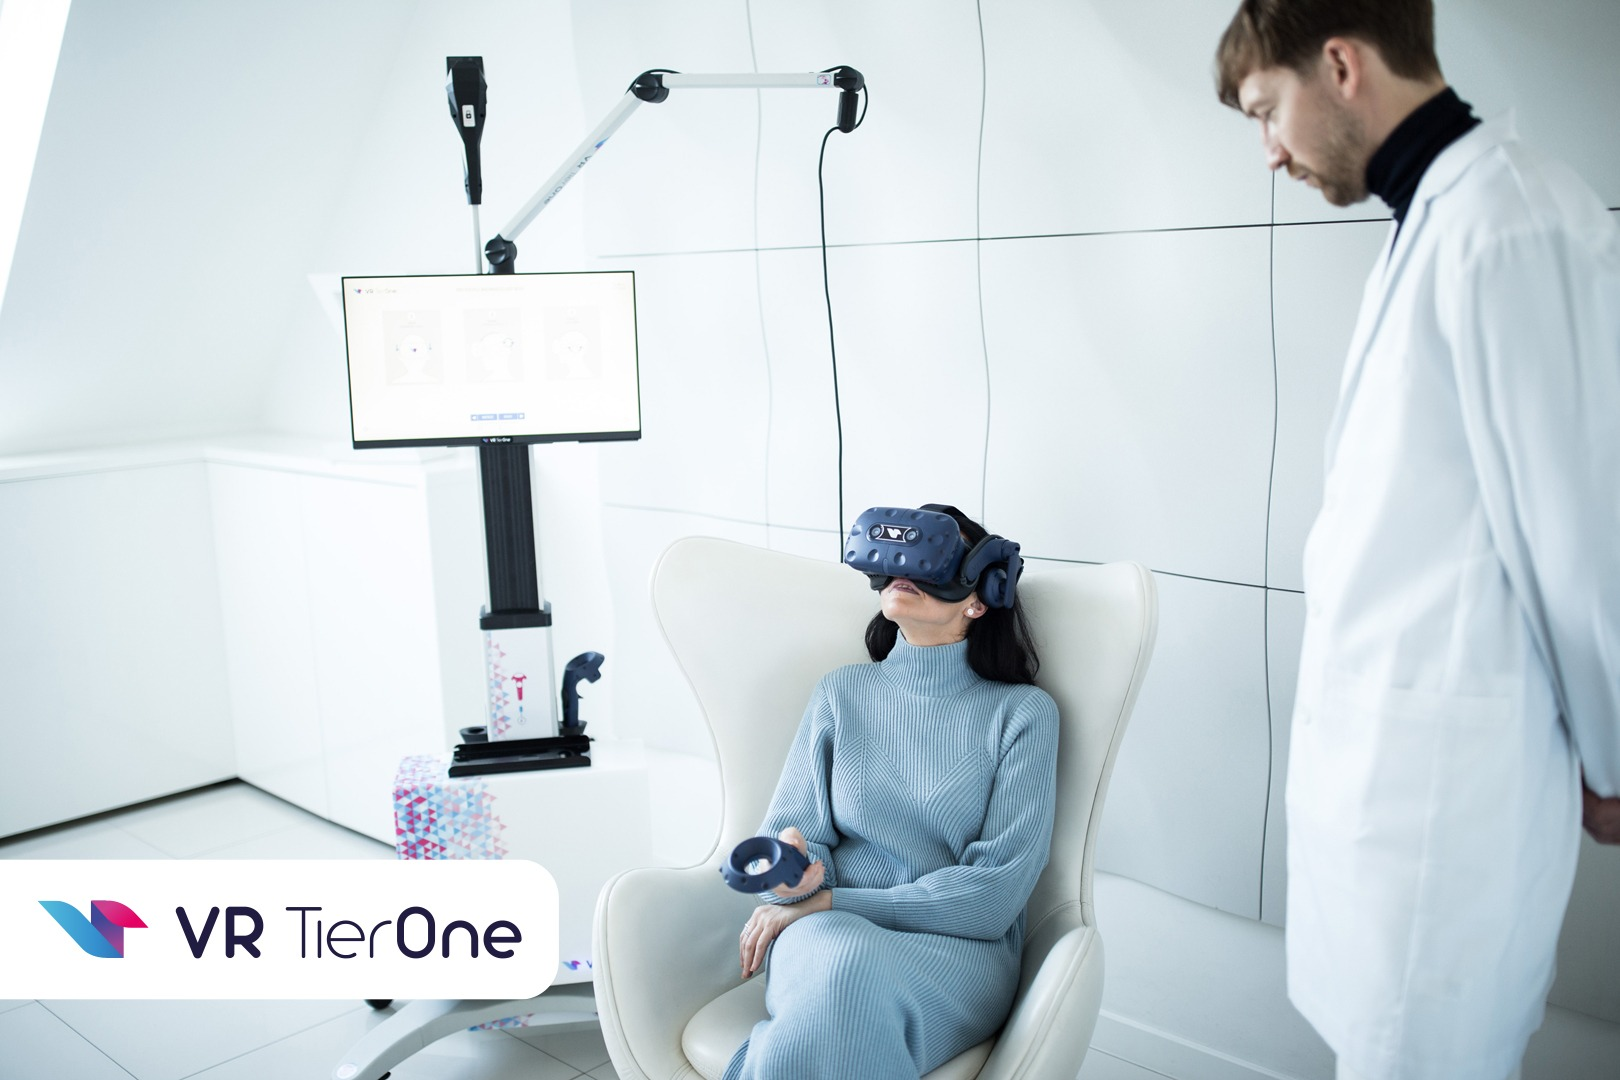 VR TierOne - how does it work and why is it able to be of help?